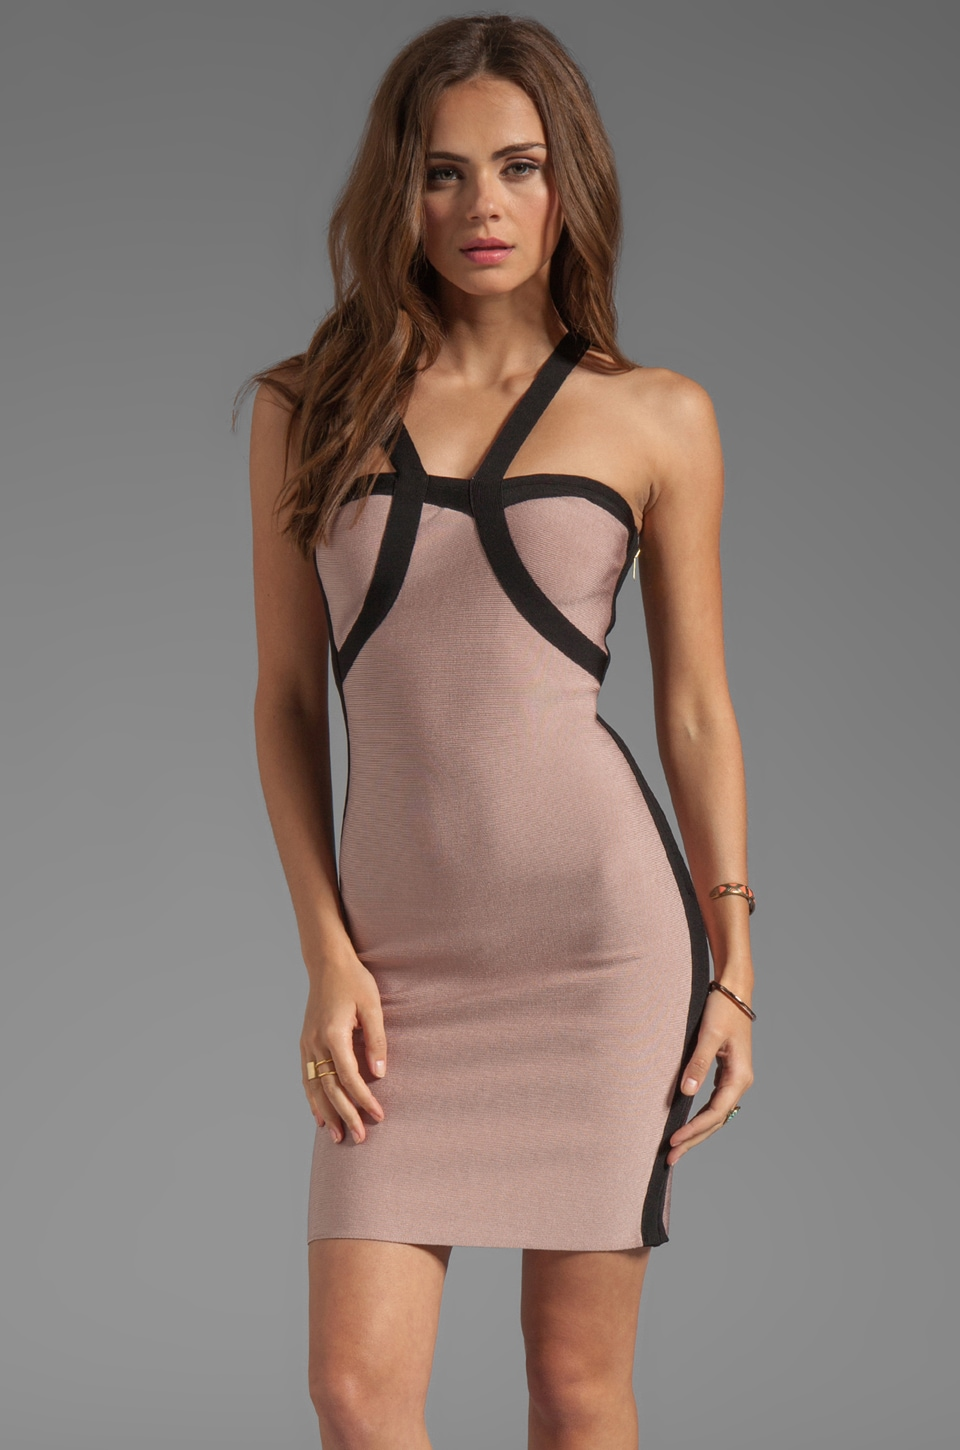 Stretta Kesha Asymmetrical Dress in Nude & Black | REVOLVE